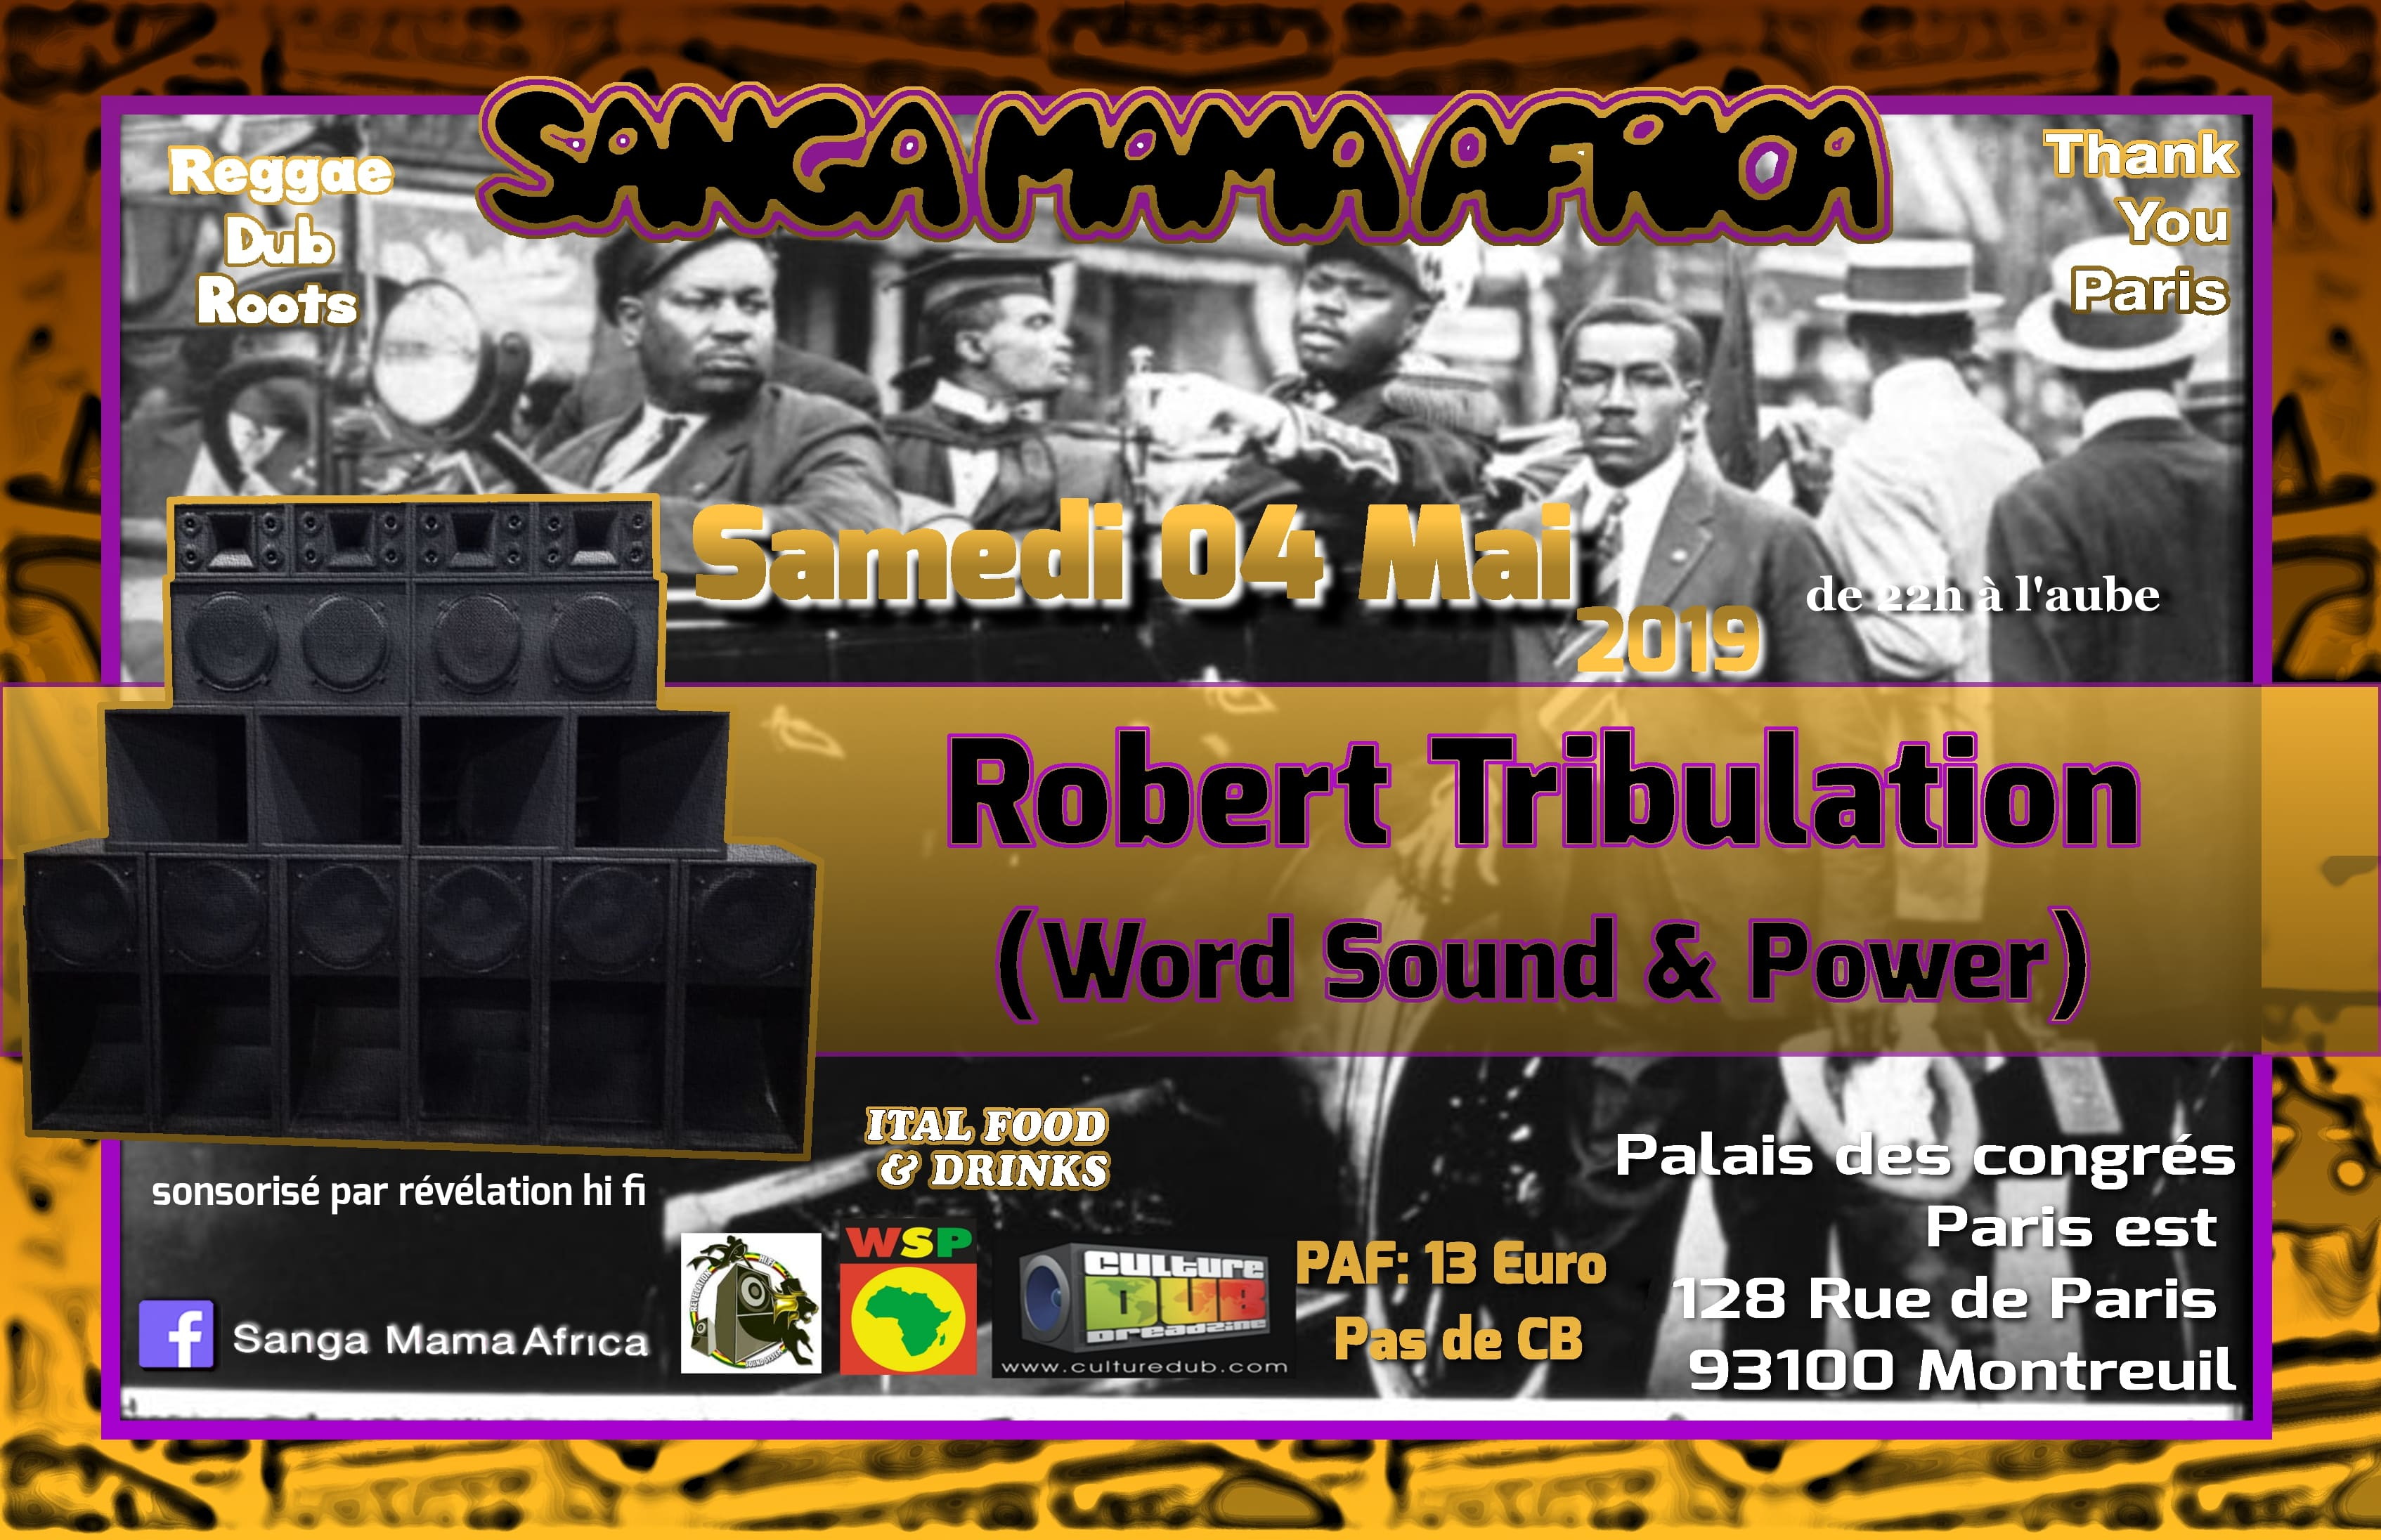 Sanga Mama Africa & Robert Tribulation